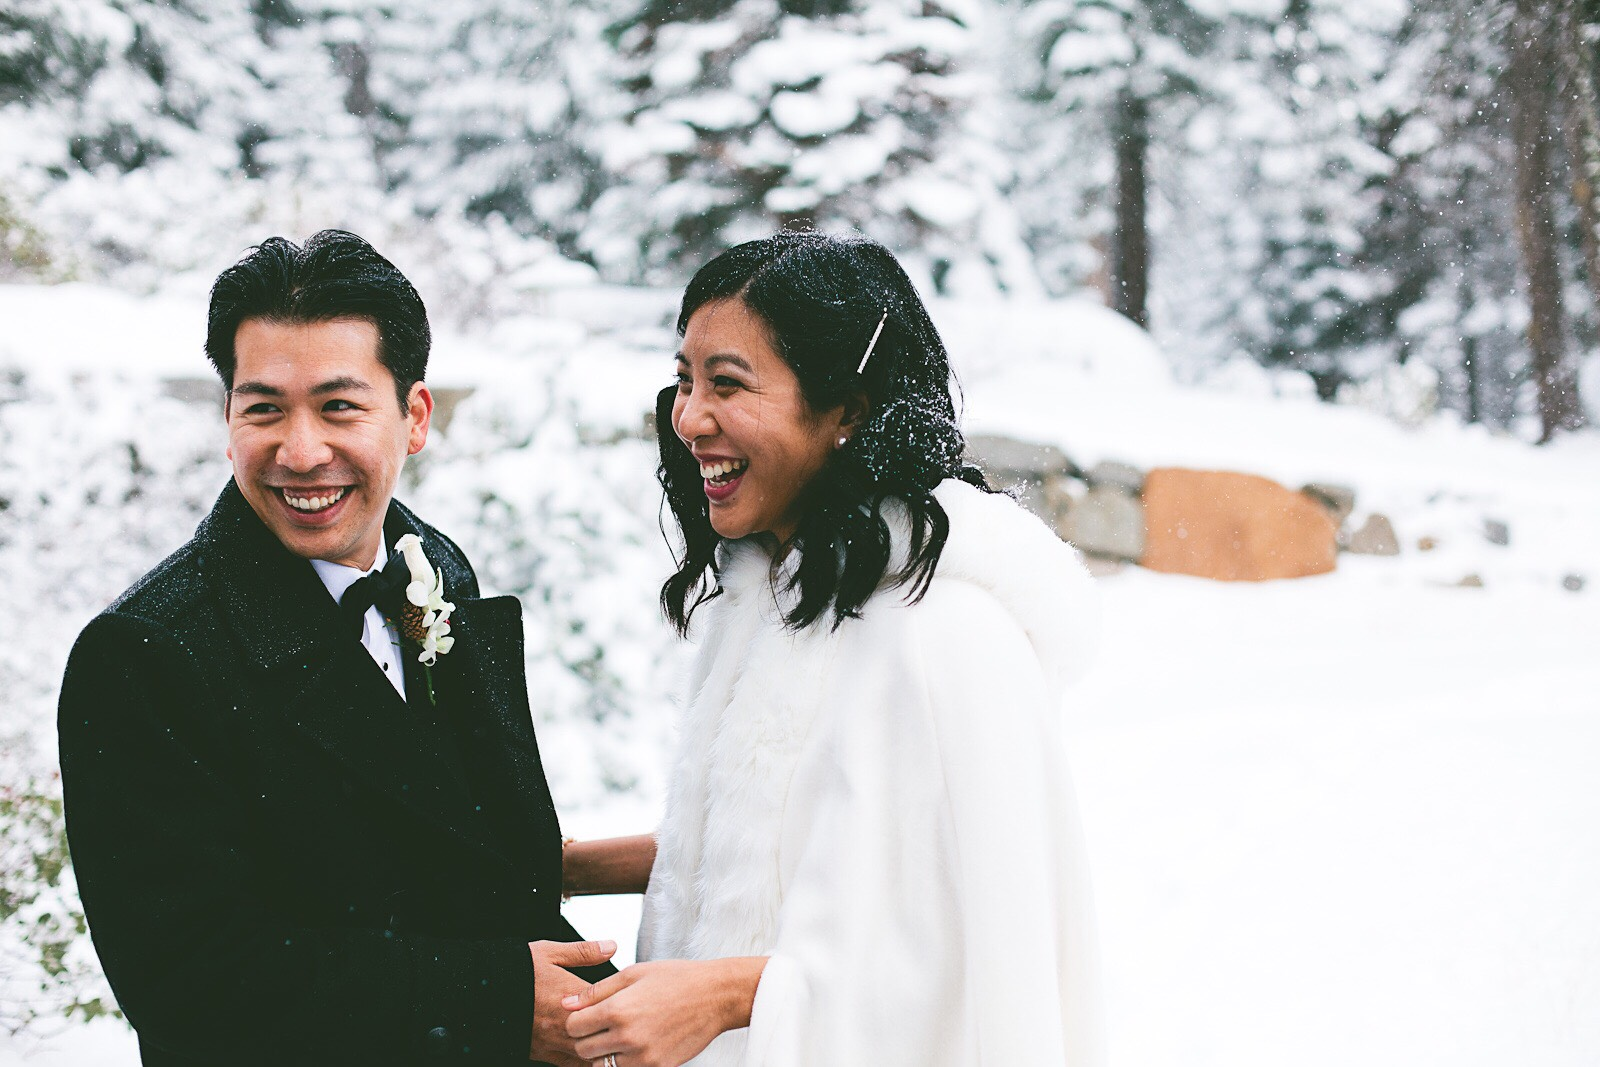 Snowy Wedding Photo with Bride and Groom